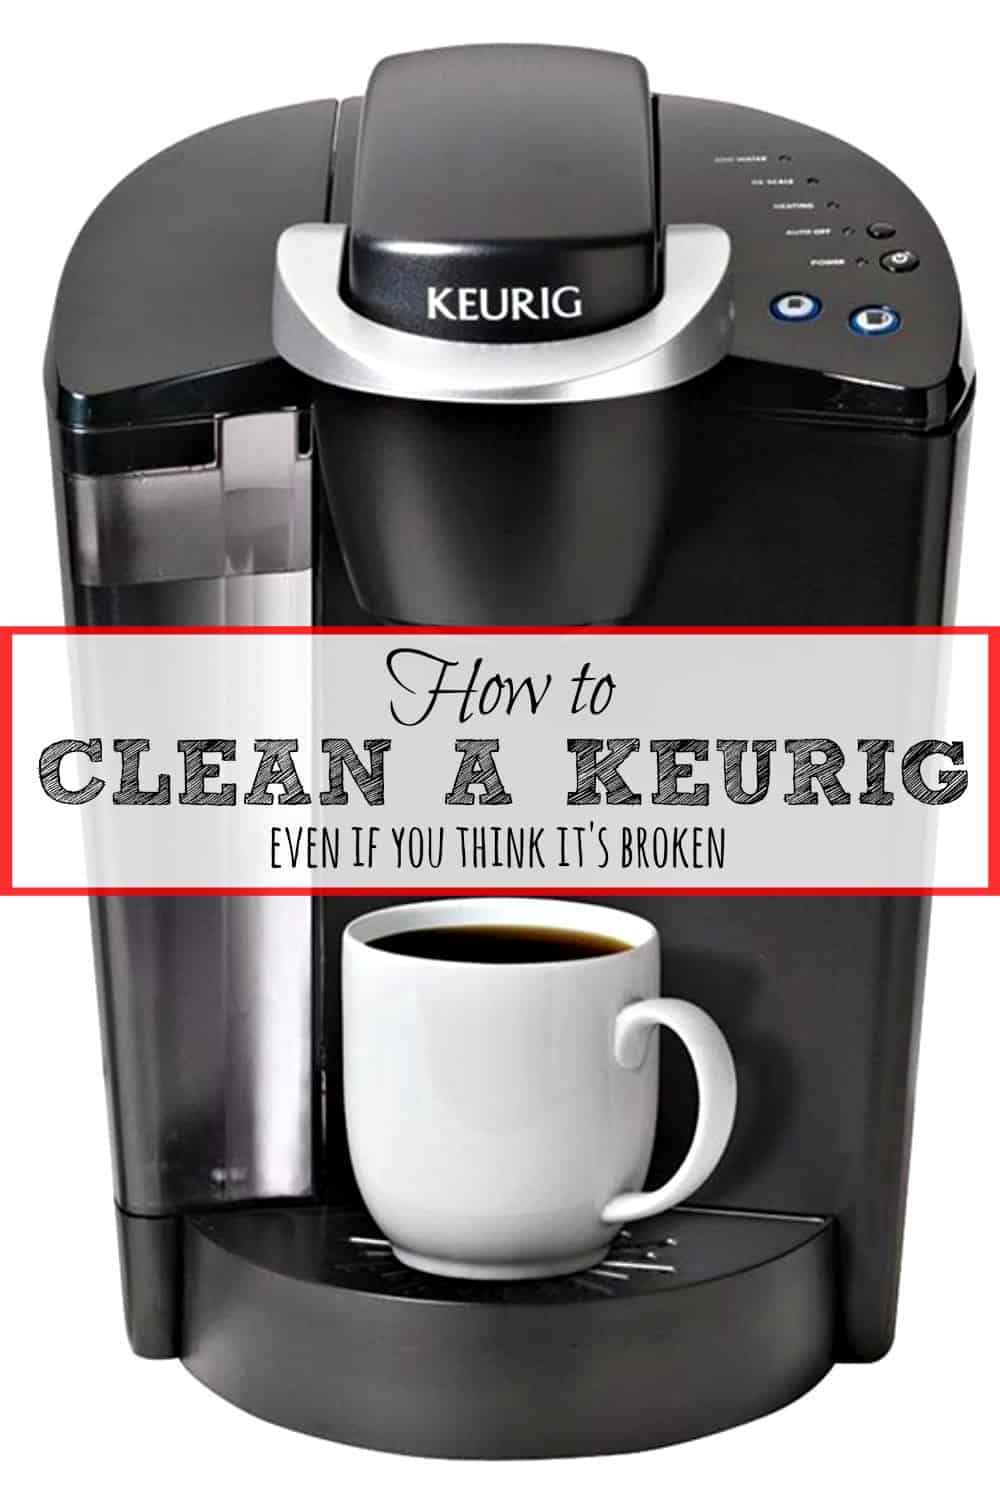 How To Clean A Keurig (even if you think it's broken ...